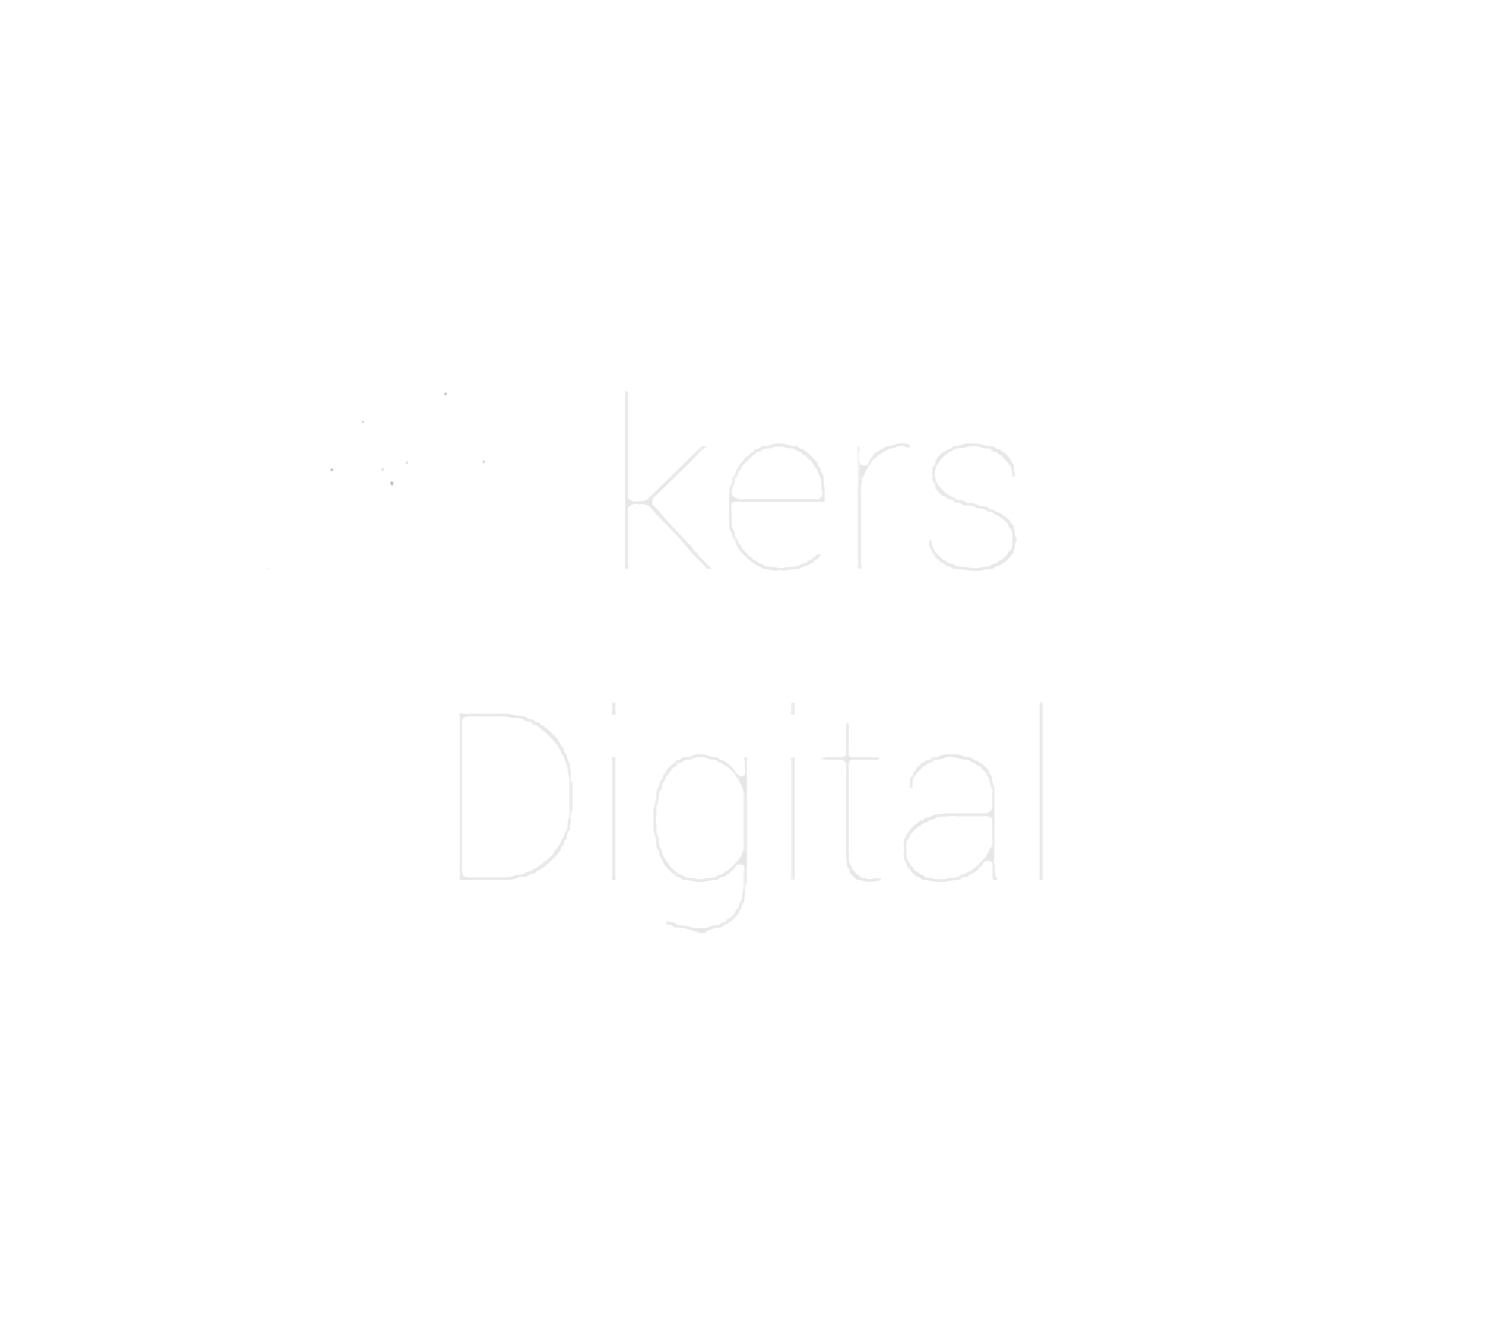 Akers Digital